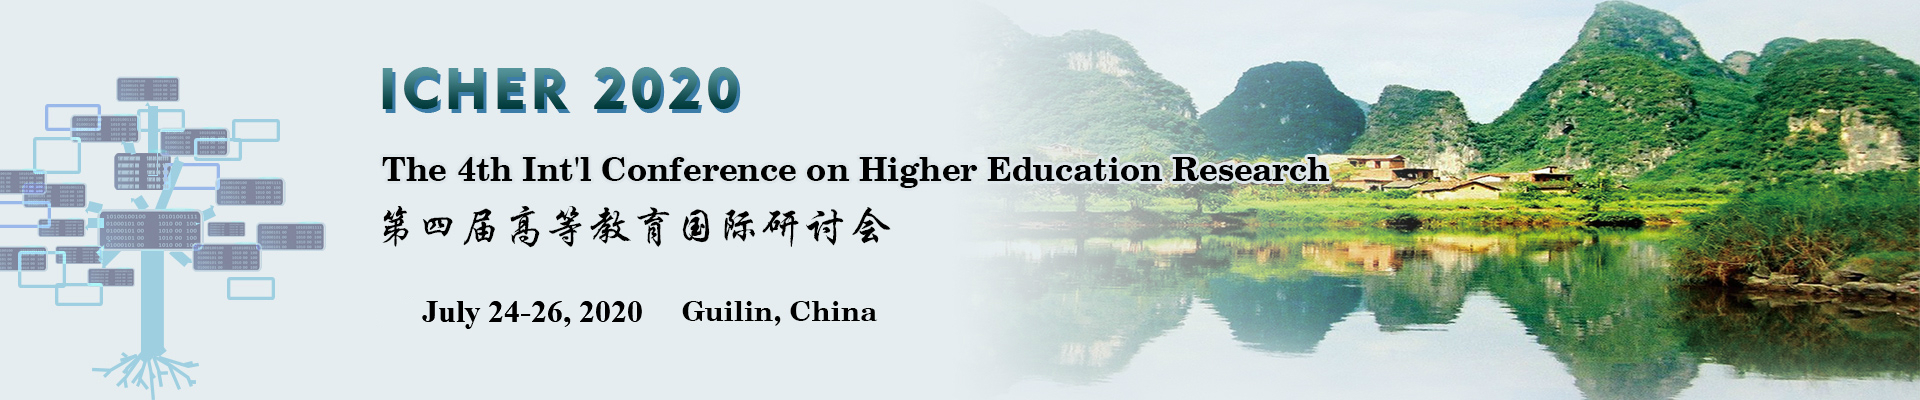 The 4th Int'l Conference on Higher Education Research (ICHER 2020